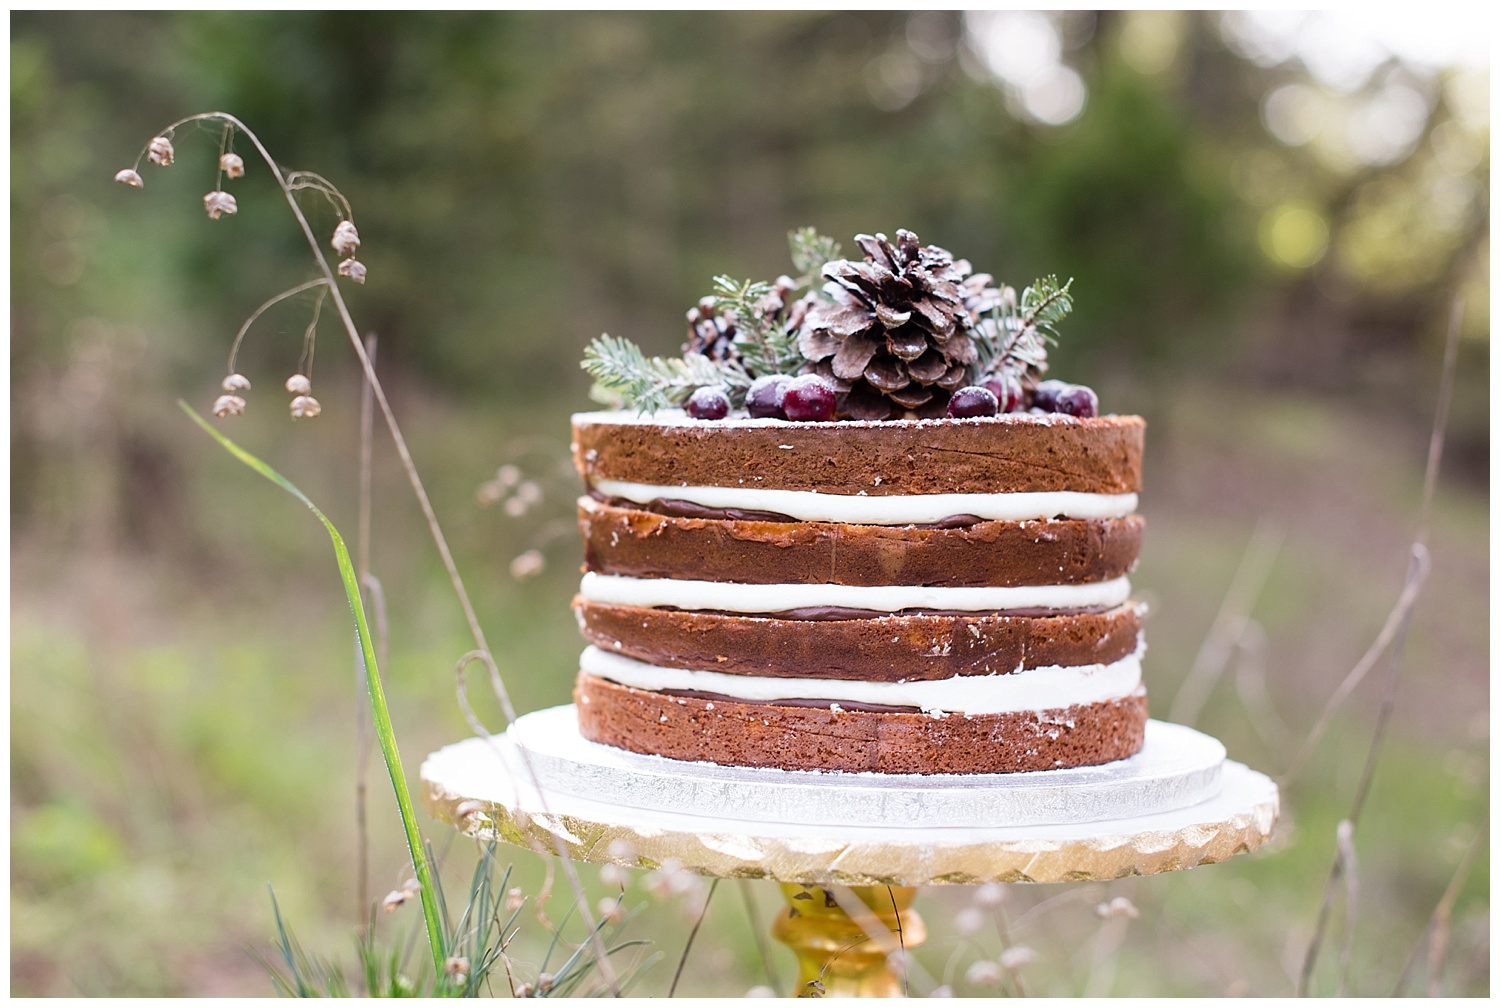 winter-wedding-cake-forest-pinecones.jpg